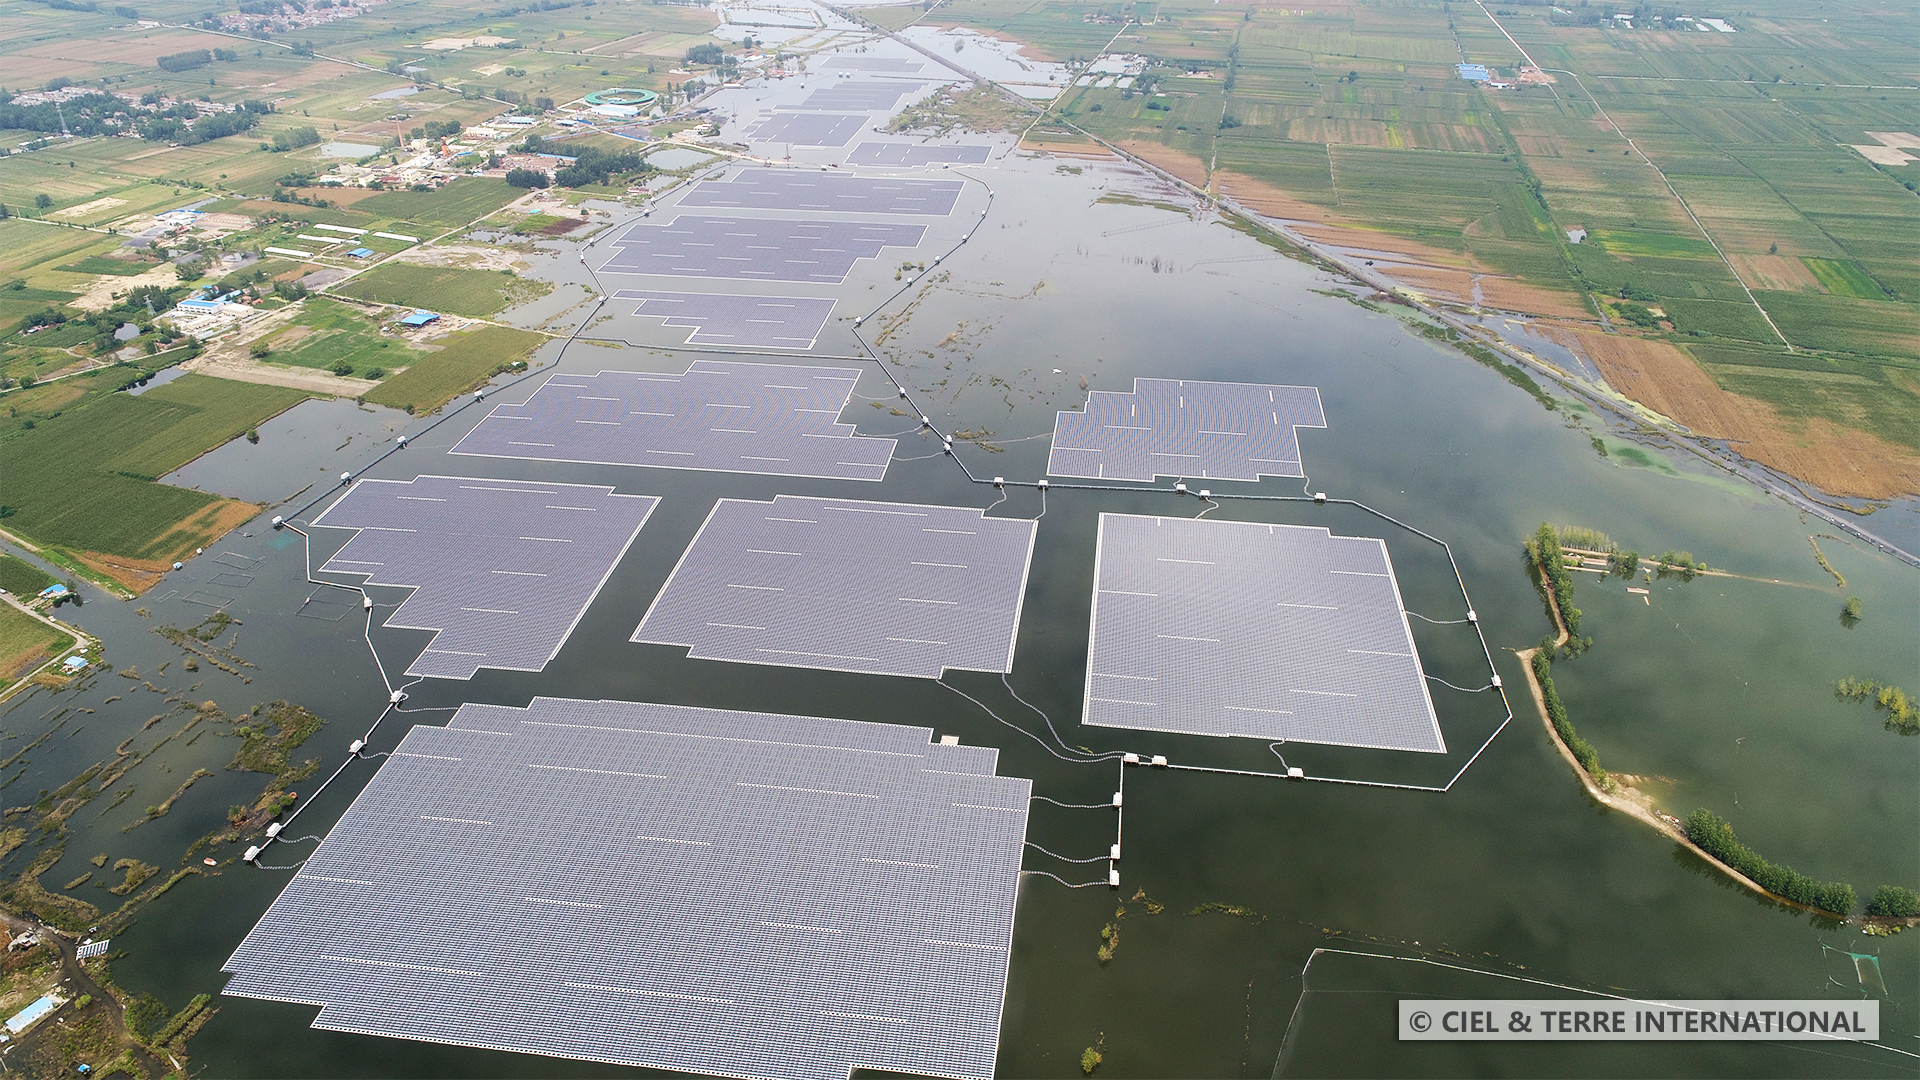 China-based firm Three Gorges New Energy, has already partially connected a 150MW floating PV project to the grid, which is likely to become the largest plant globally once fully commissioned. Credit: Ciel & Terre International